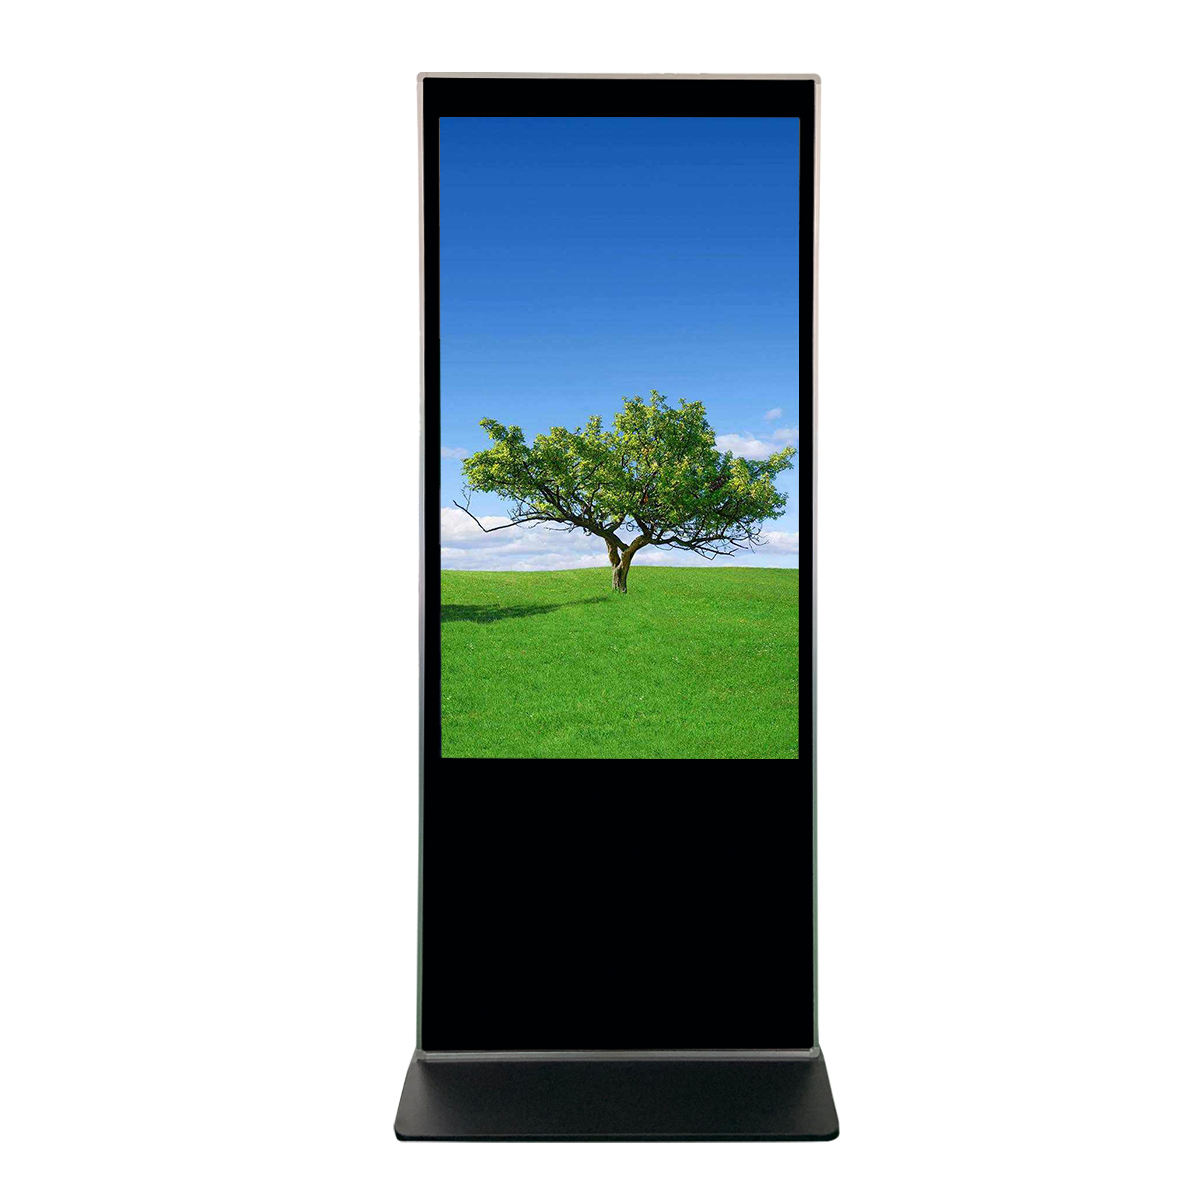 55 Inch Stand Up Kiosk 4K Touch Screen Monitor Voor Verbinding Speler Of Mini Pc